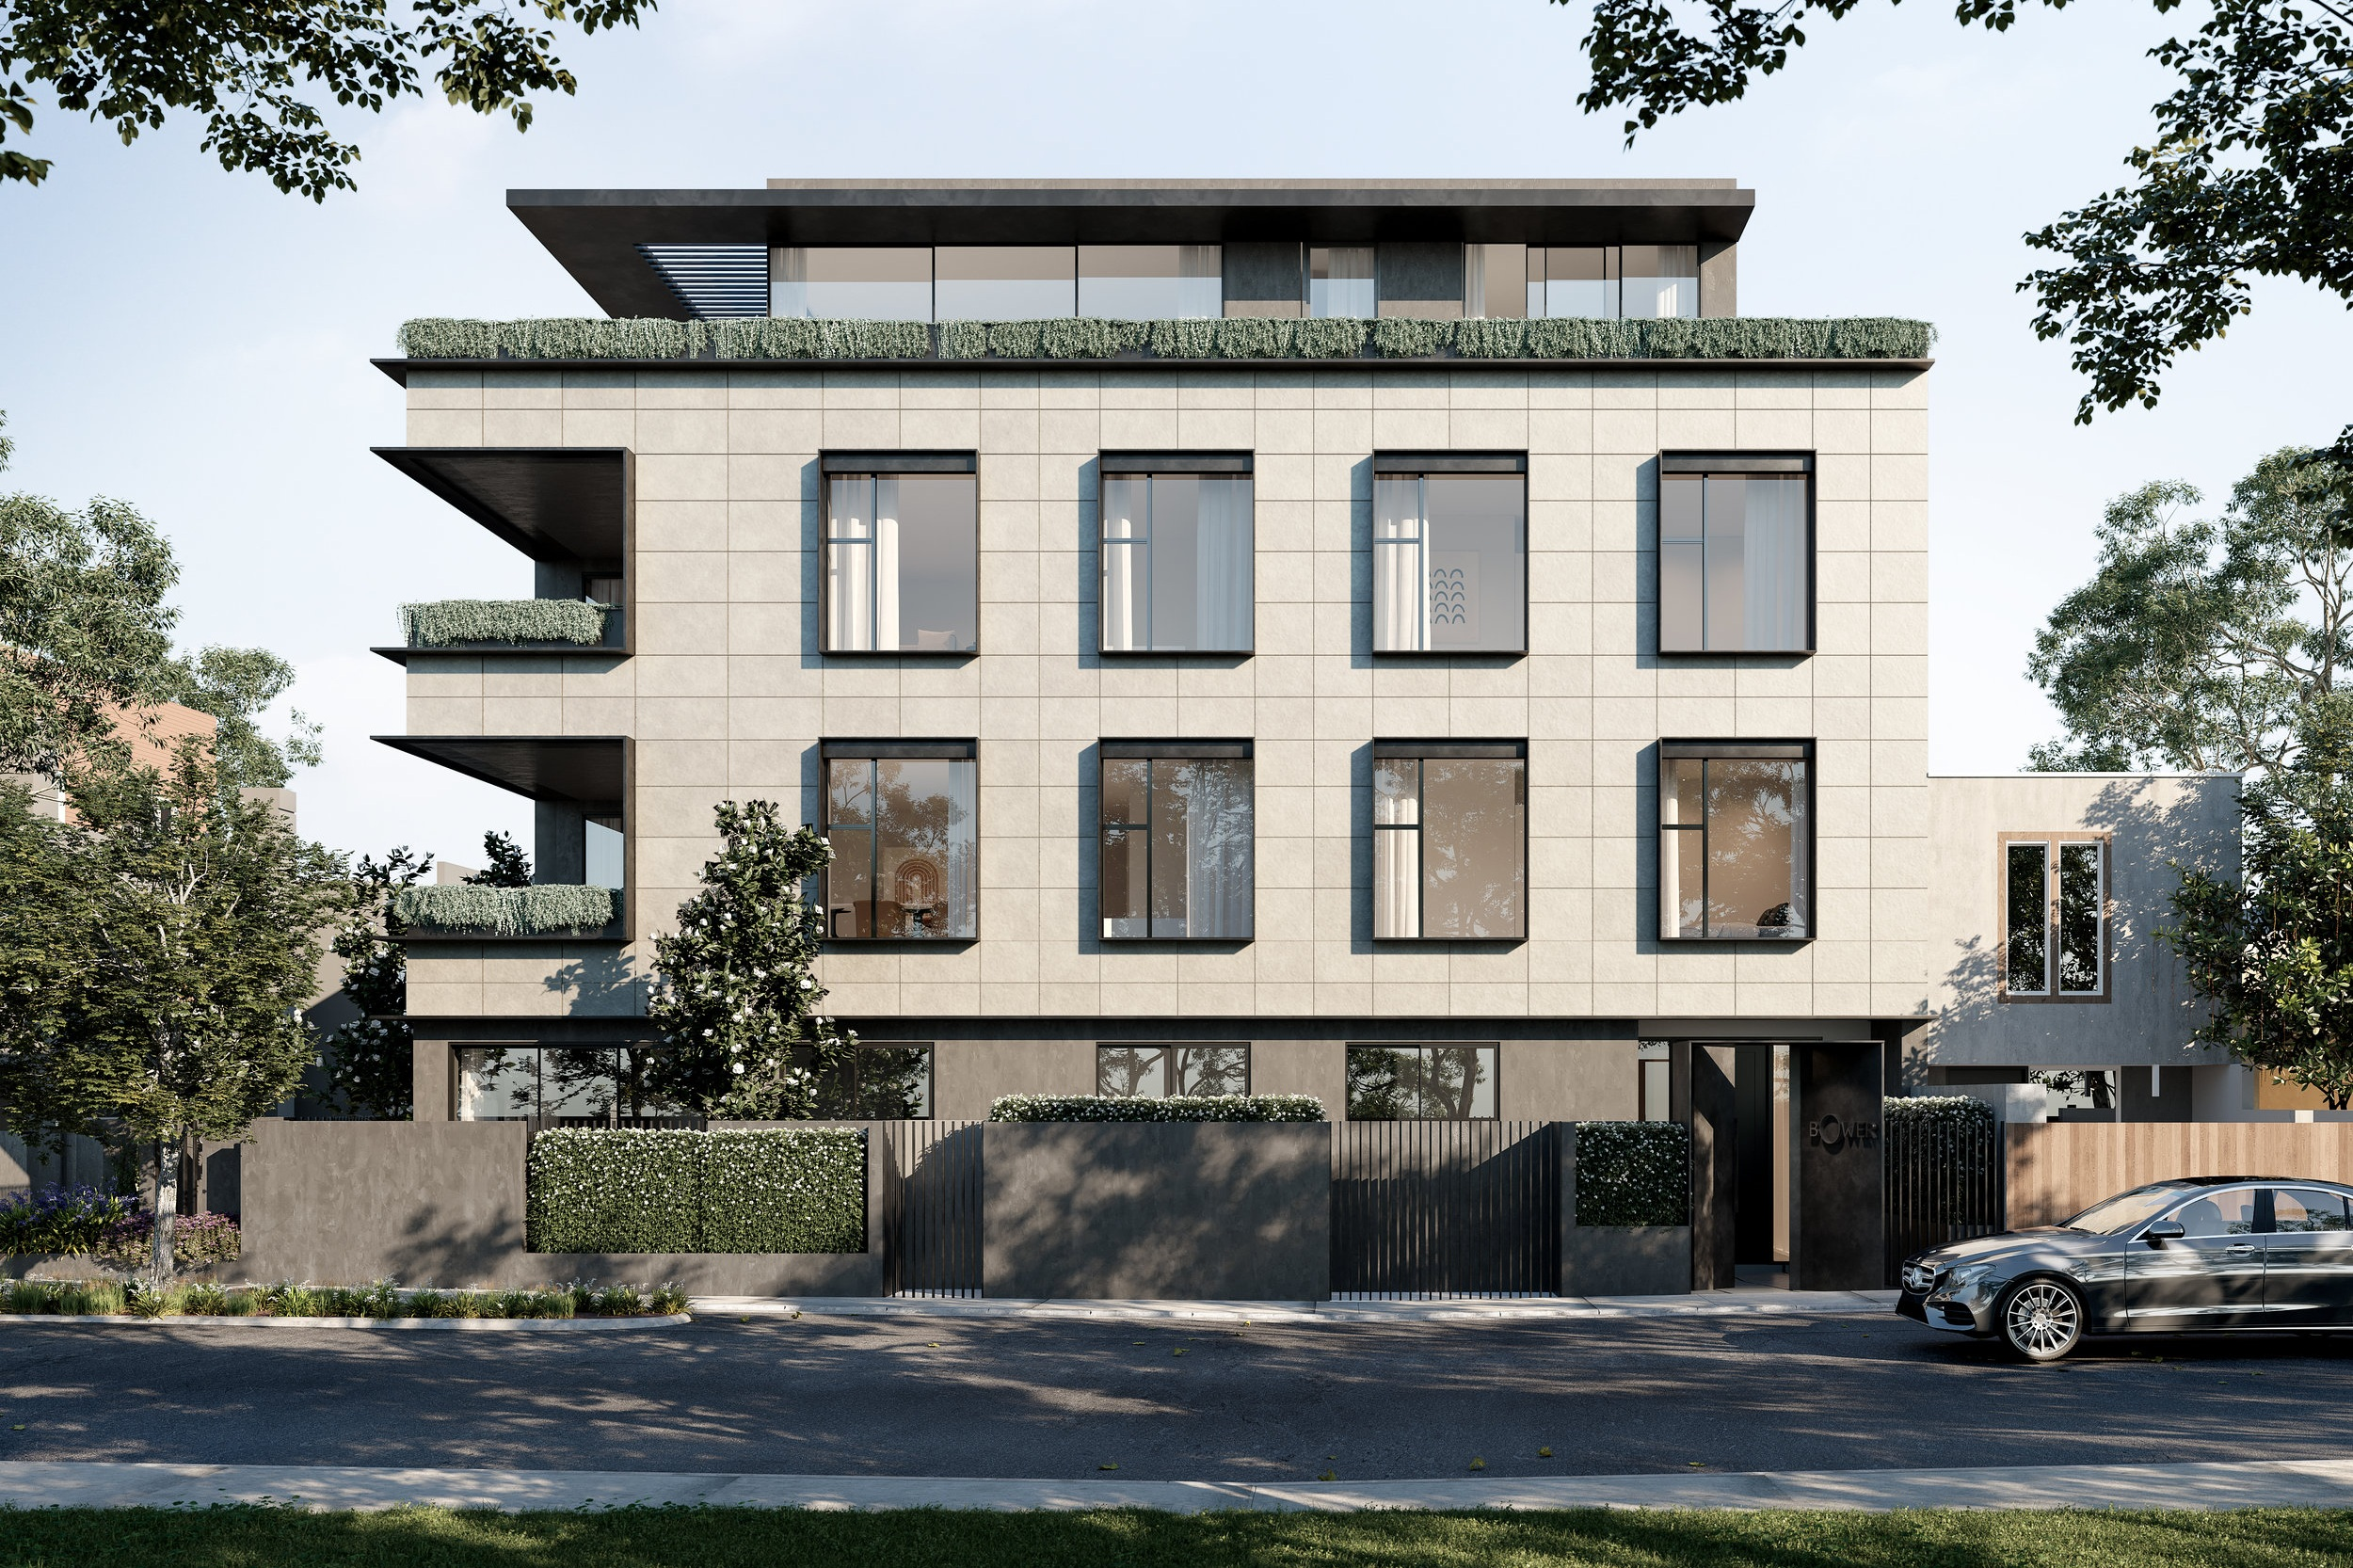 S02_16-18_Chambers_South_Yarra_EXT_Entry_Final.jpg